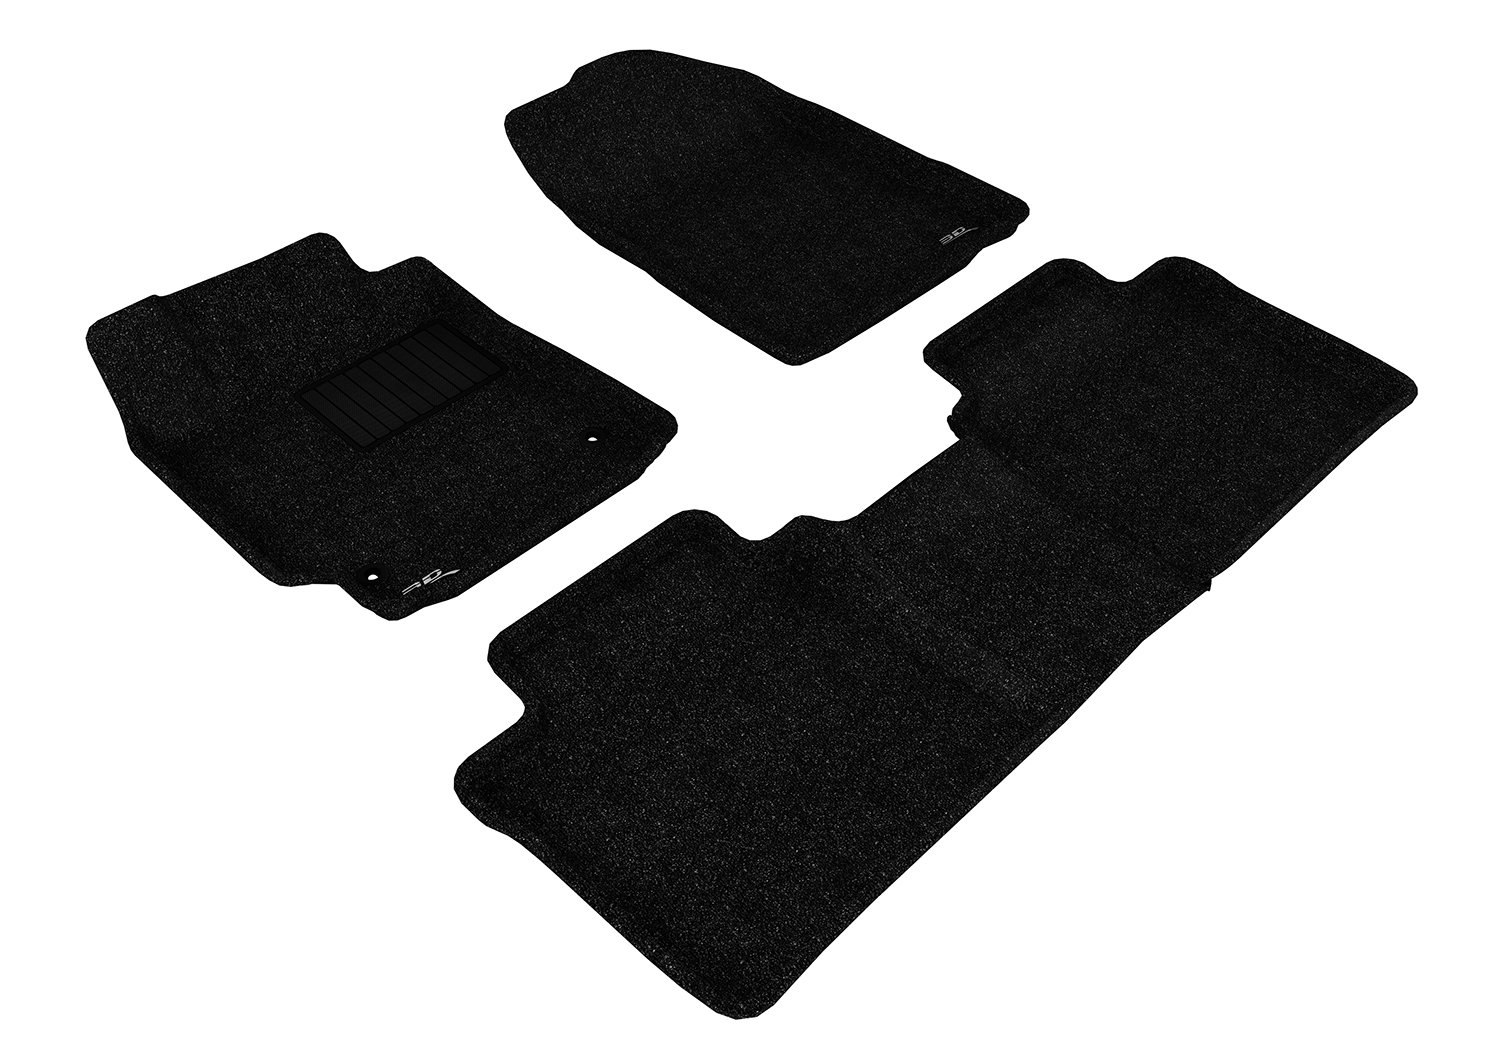 3D MAXpider Complete Set Custom Fit Floor Mat for Select Toyota Camry Models L1TY00402201 Classic Carpet Gray